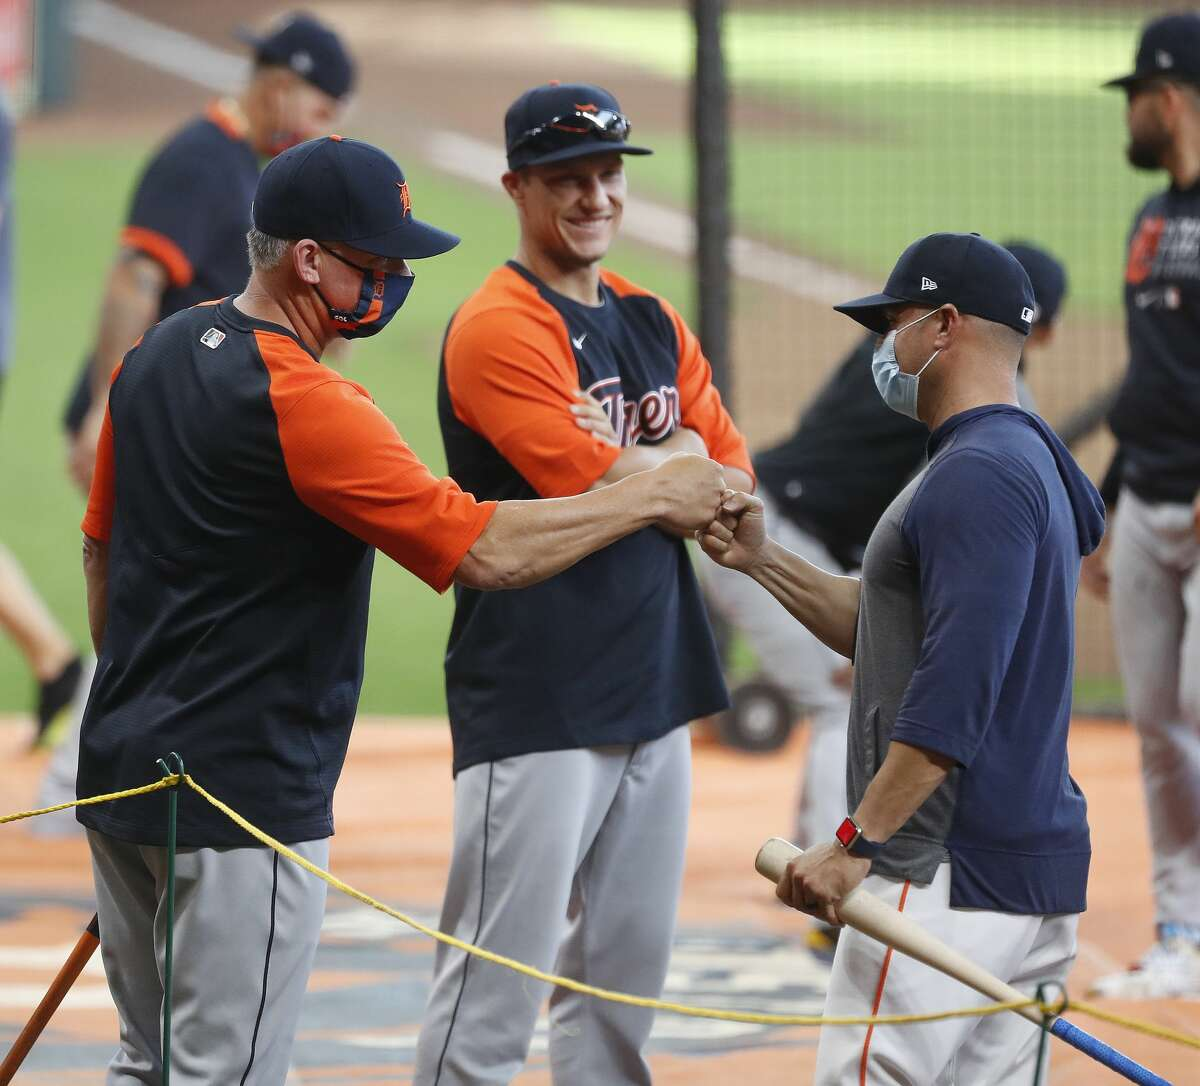 Detroit Tigers manager A.J. Hinch gives Houston Astros bench coach Joe Espada a fist bump during batting practice before the start of an MLB baseball game at Minute Maid Park, in Houston, Monday, April 12, 2021.